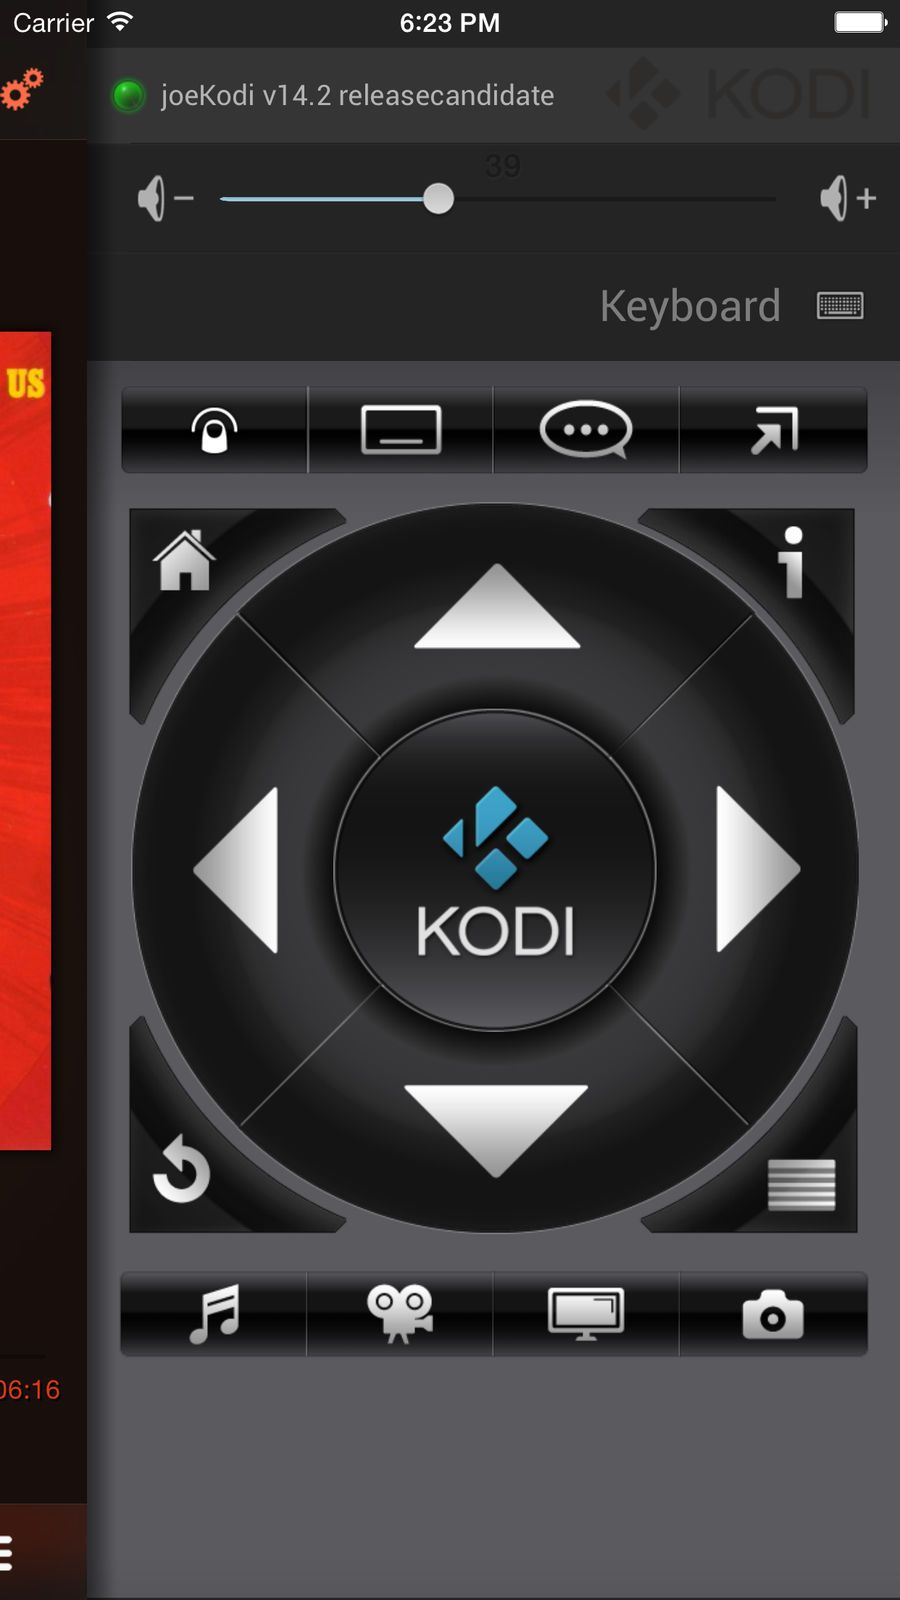 Official Kodi Remote #ios#Utilities#app#apps | game design